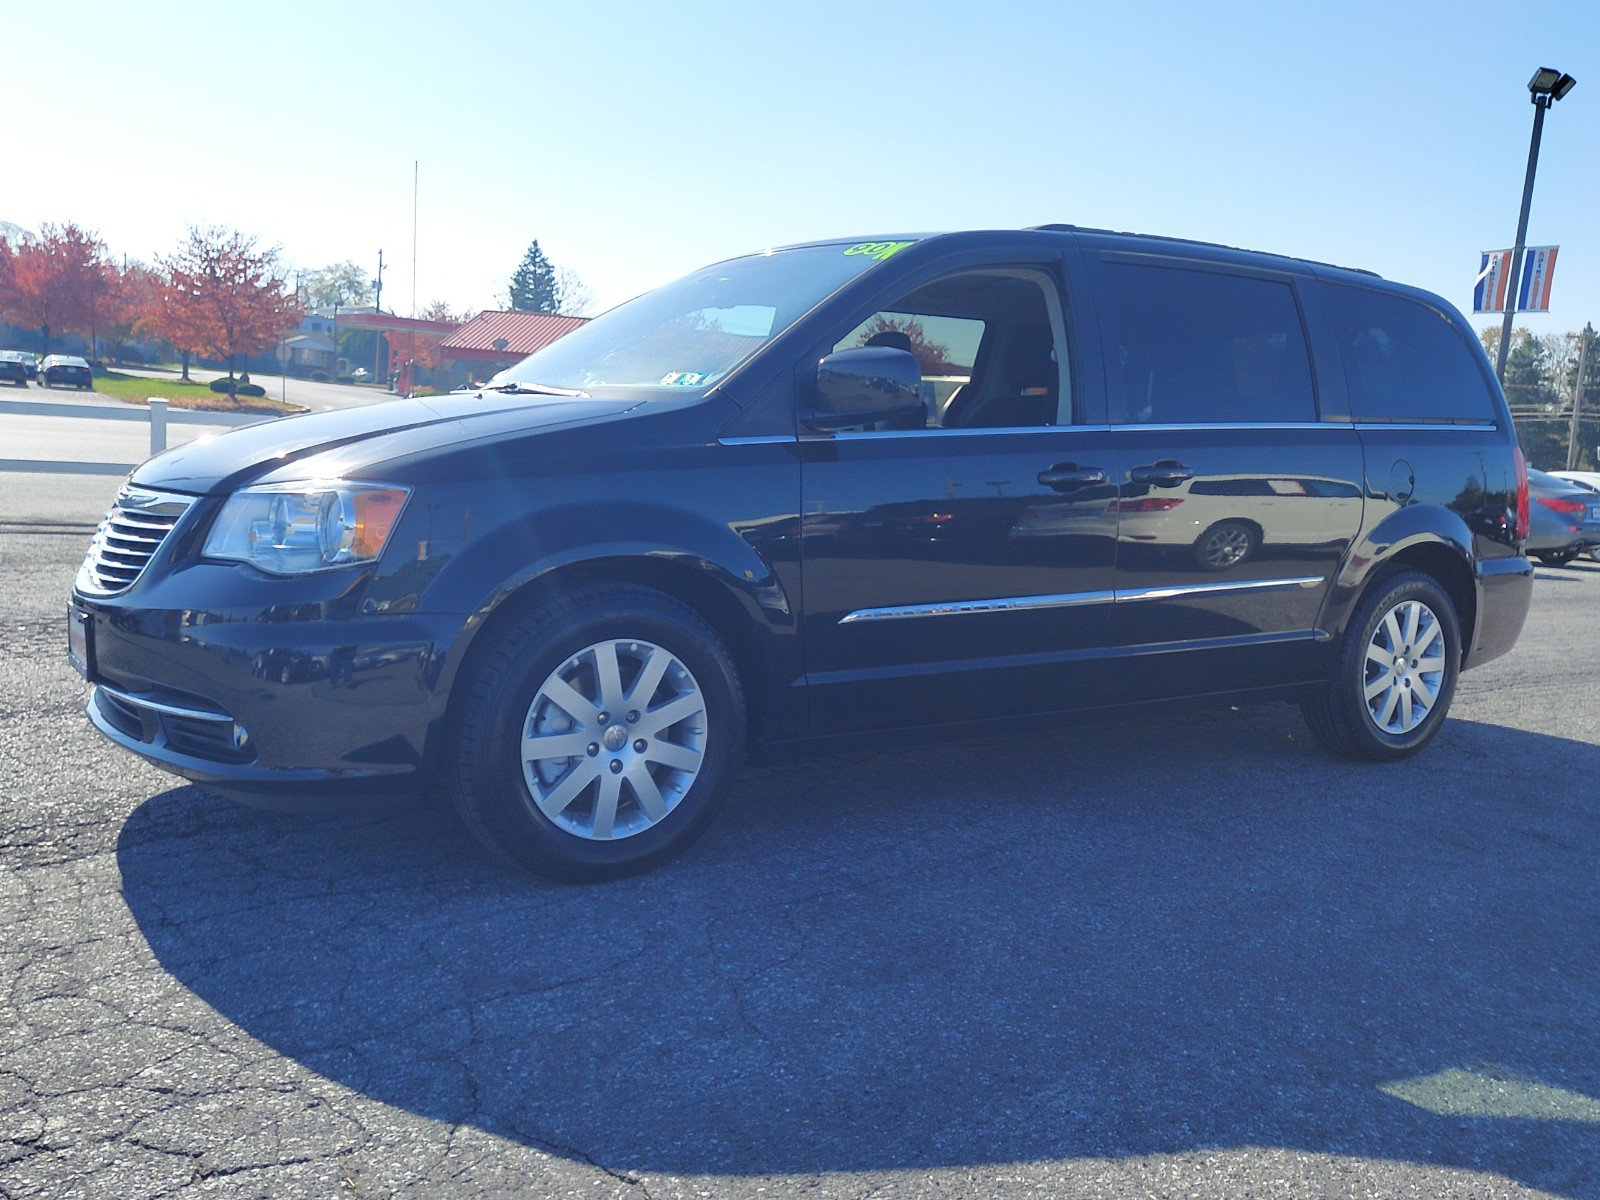 2015 Chrysler Town & Country Mini-van, Passenger